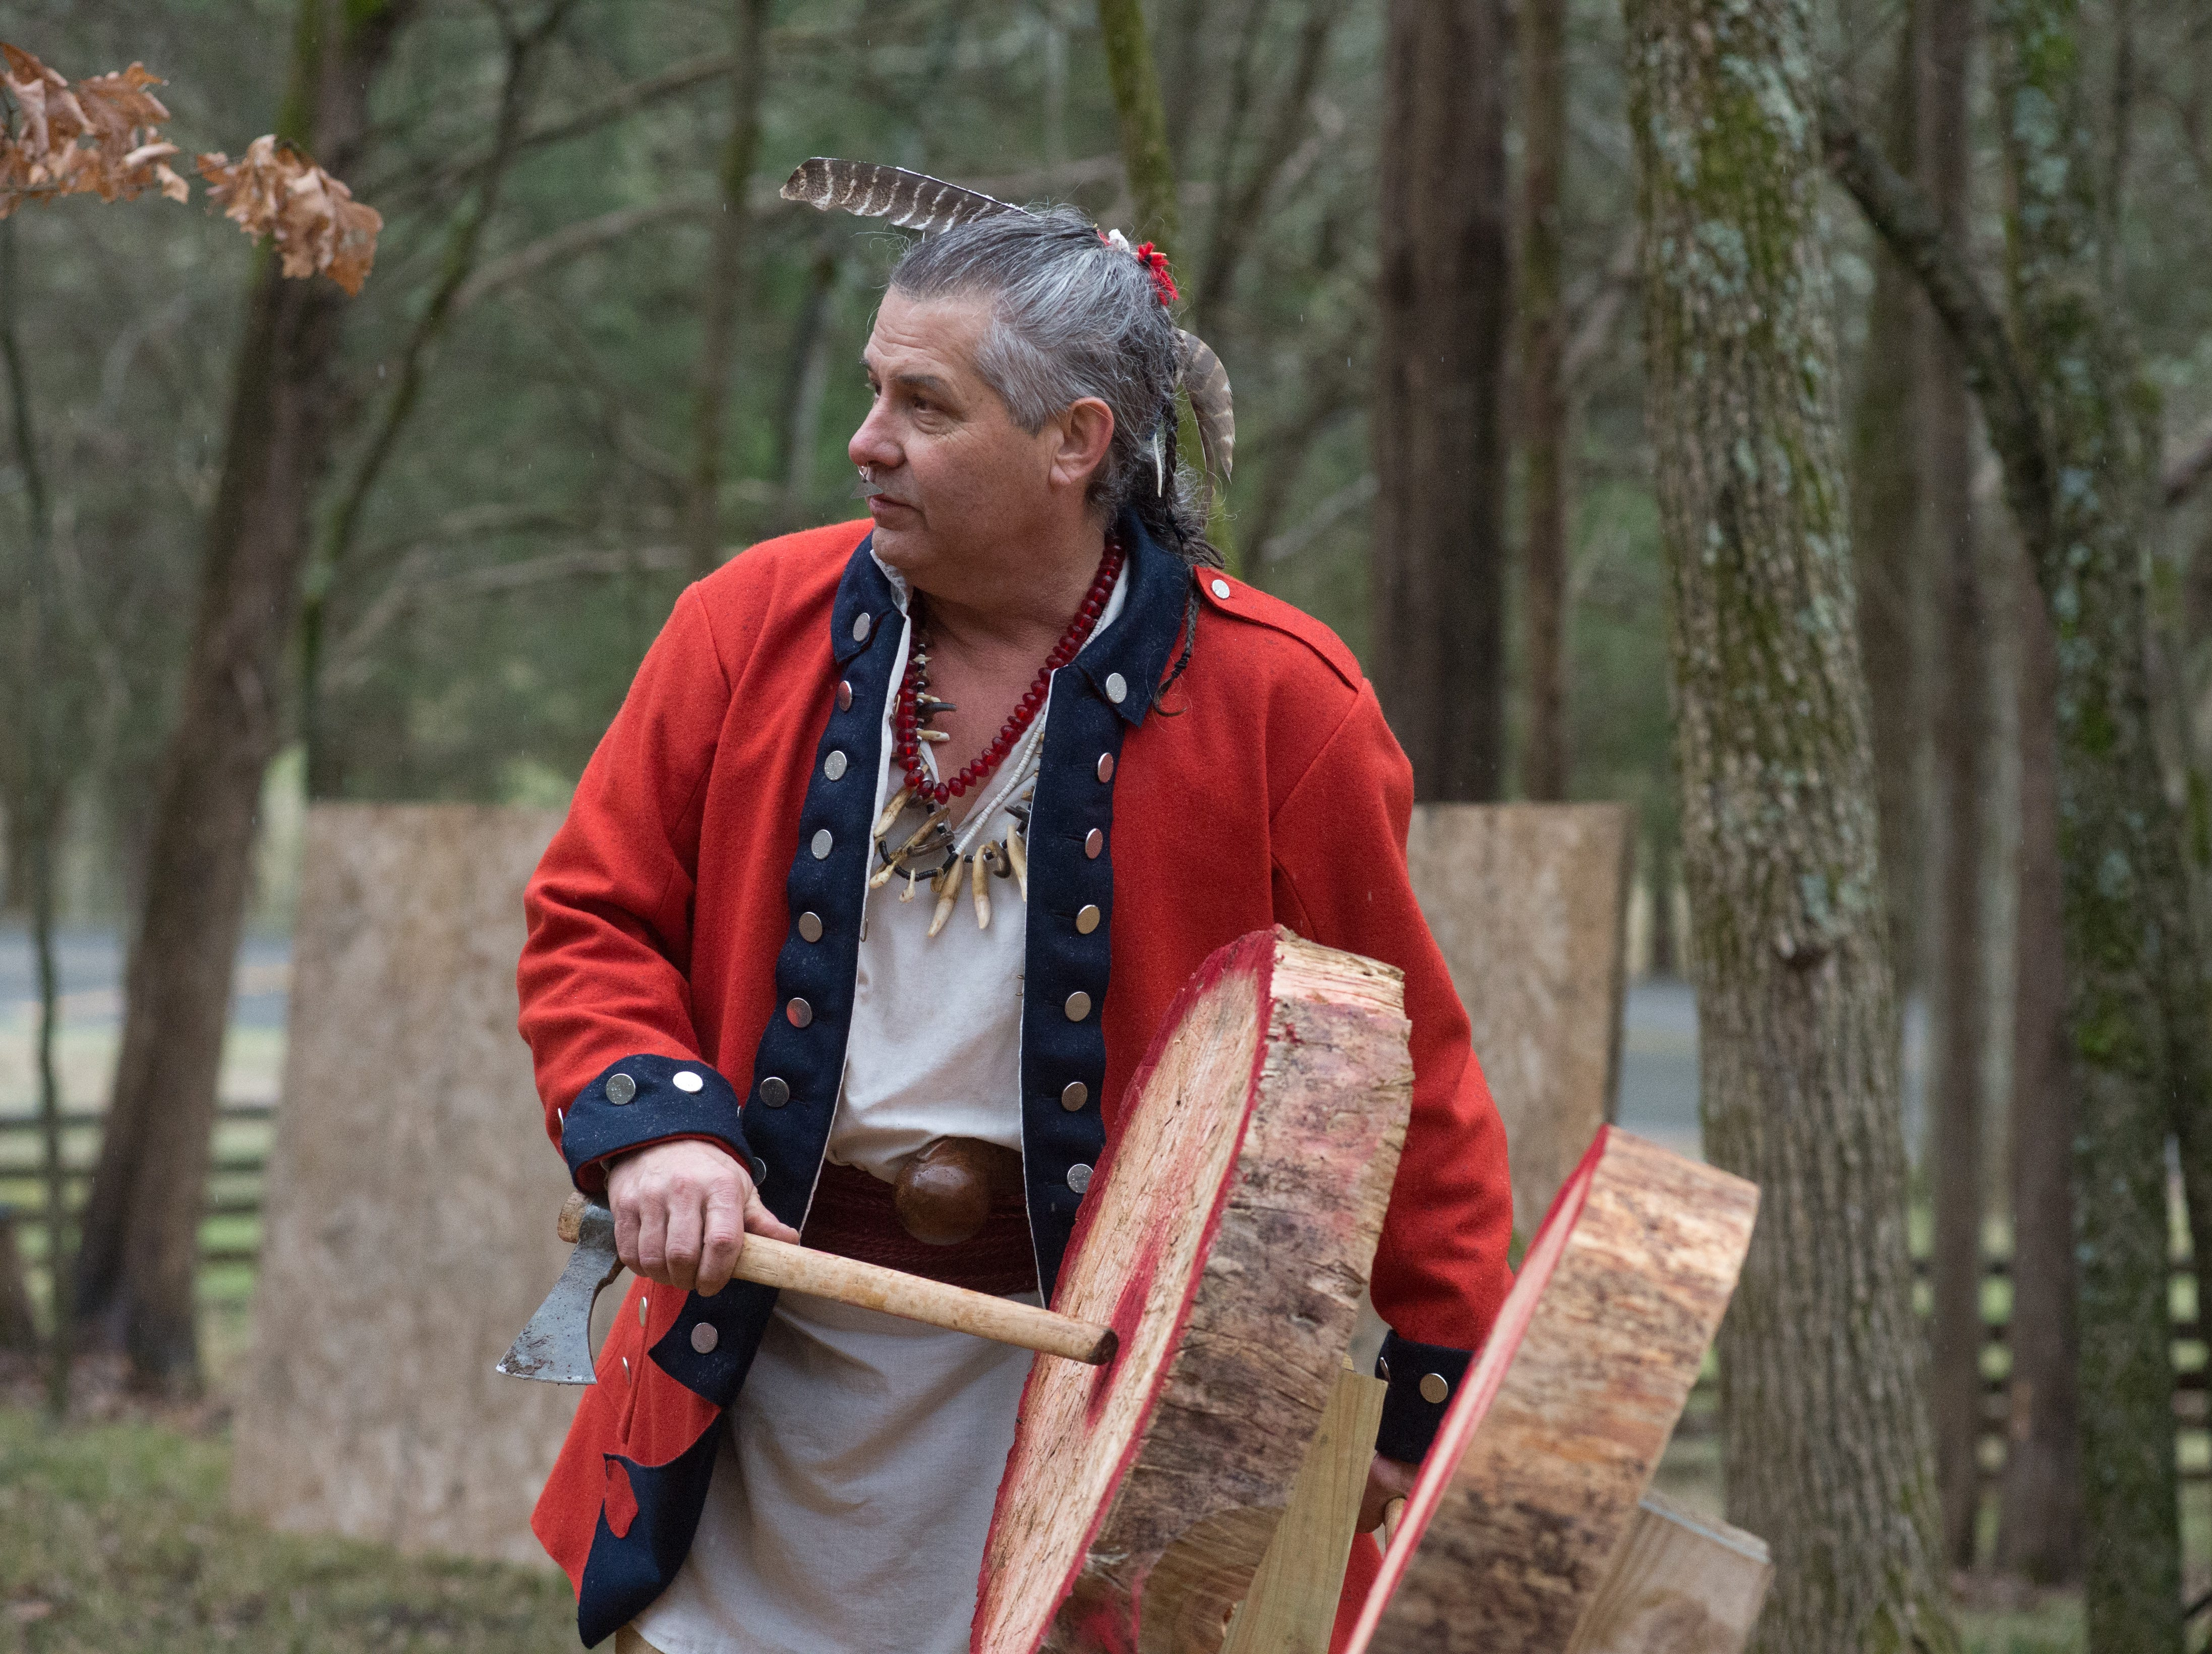 Anthony Martin gives instruction during a Tomahawk Throwing for Beginners event hosted by Middle Tennessee History Coalition at Bledsoe Creek State Park on Saturday, Jan. 12.